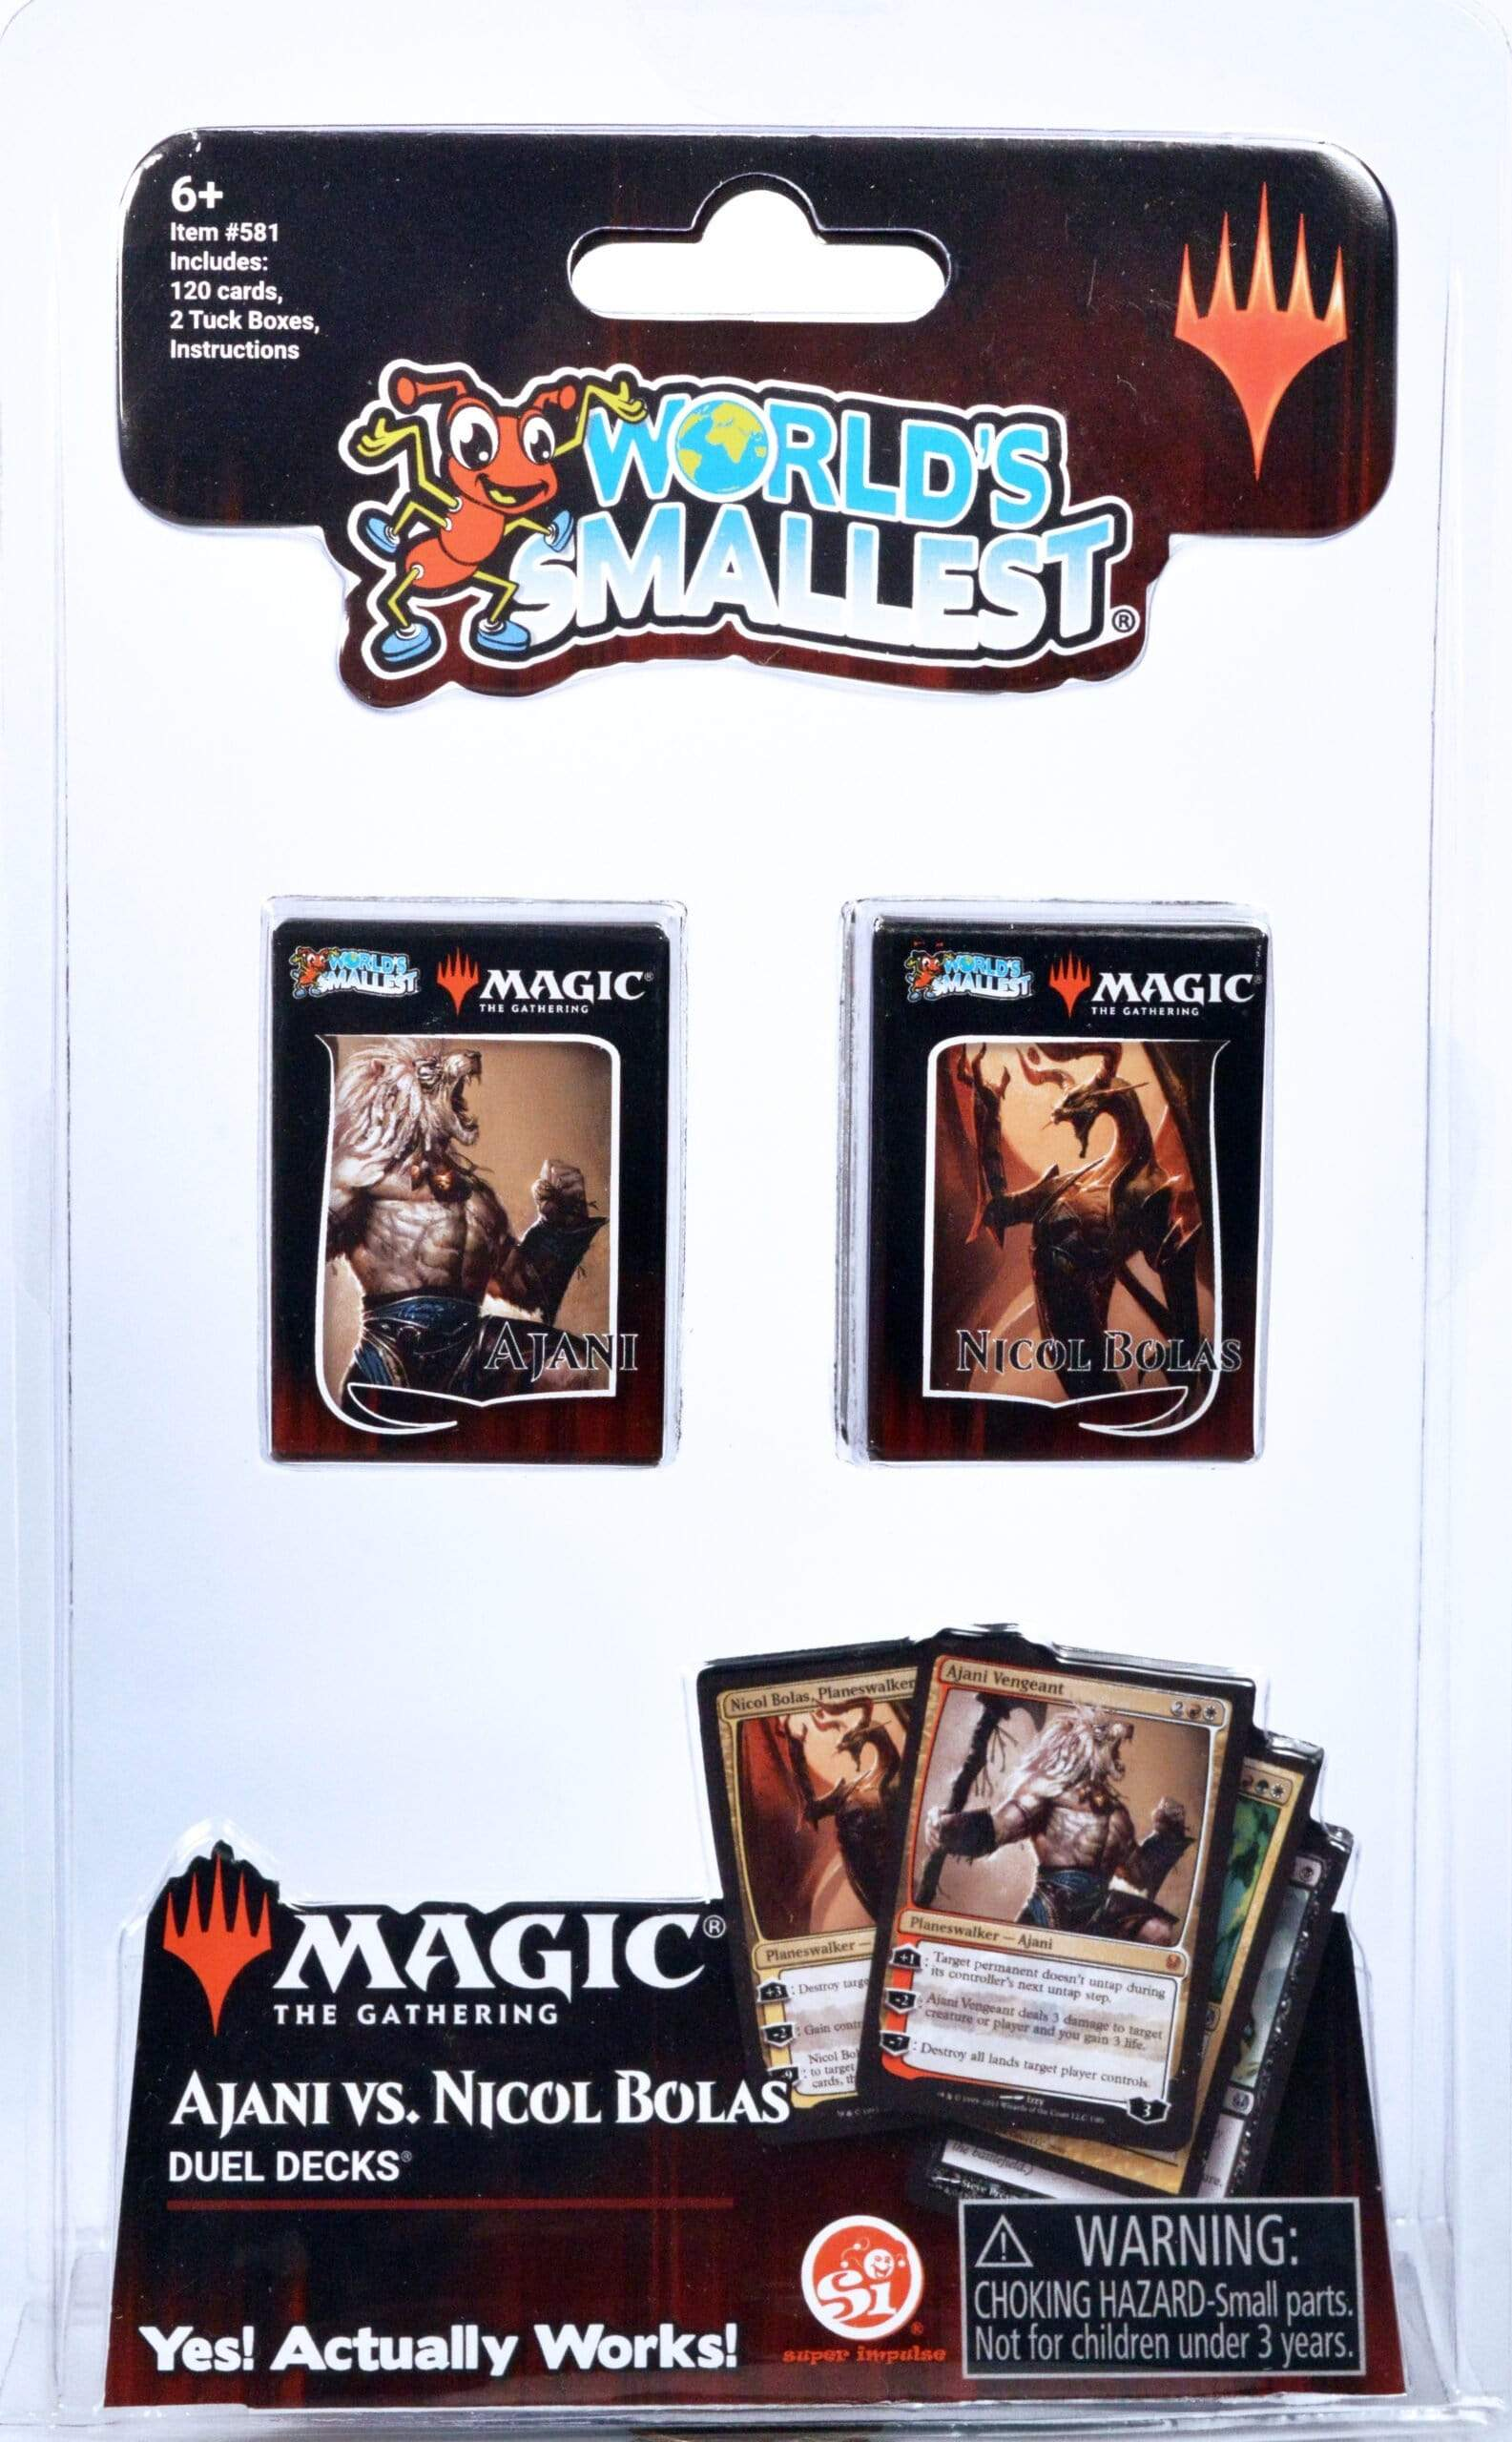 World's Smallest: Magic the Gathering-Ajani vs Nicol Bolas Super Impulse Puzzles/Playthings